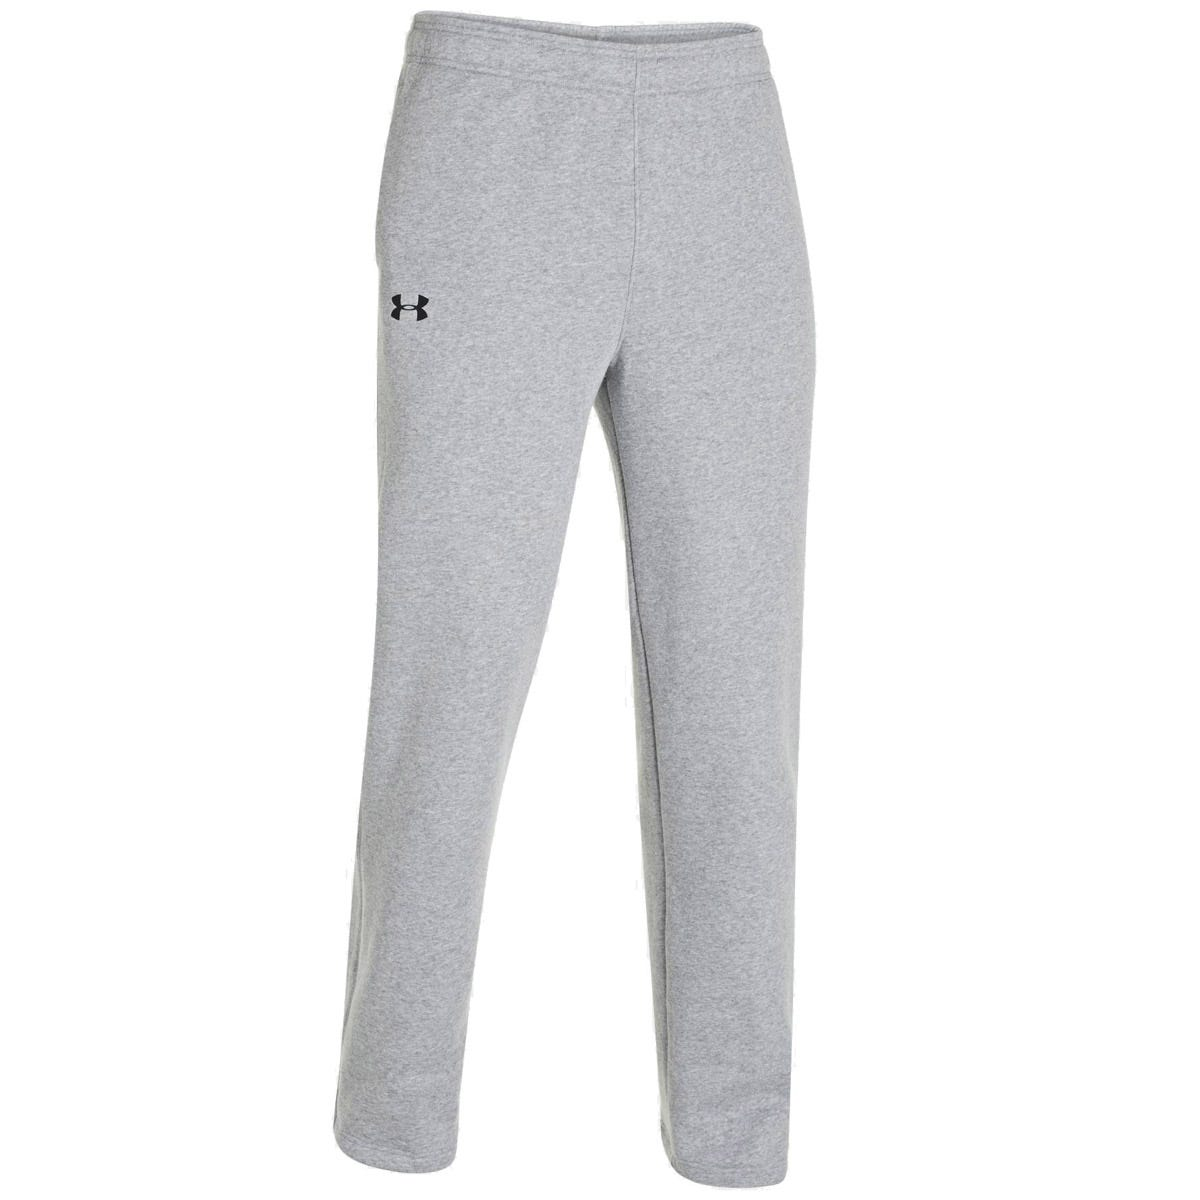 Under Armour Rival Fleece Sr. Pants